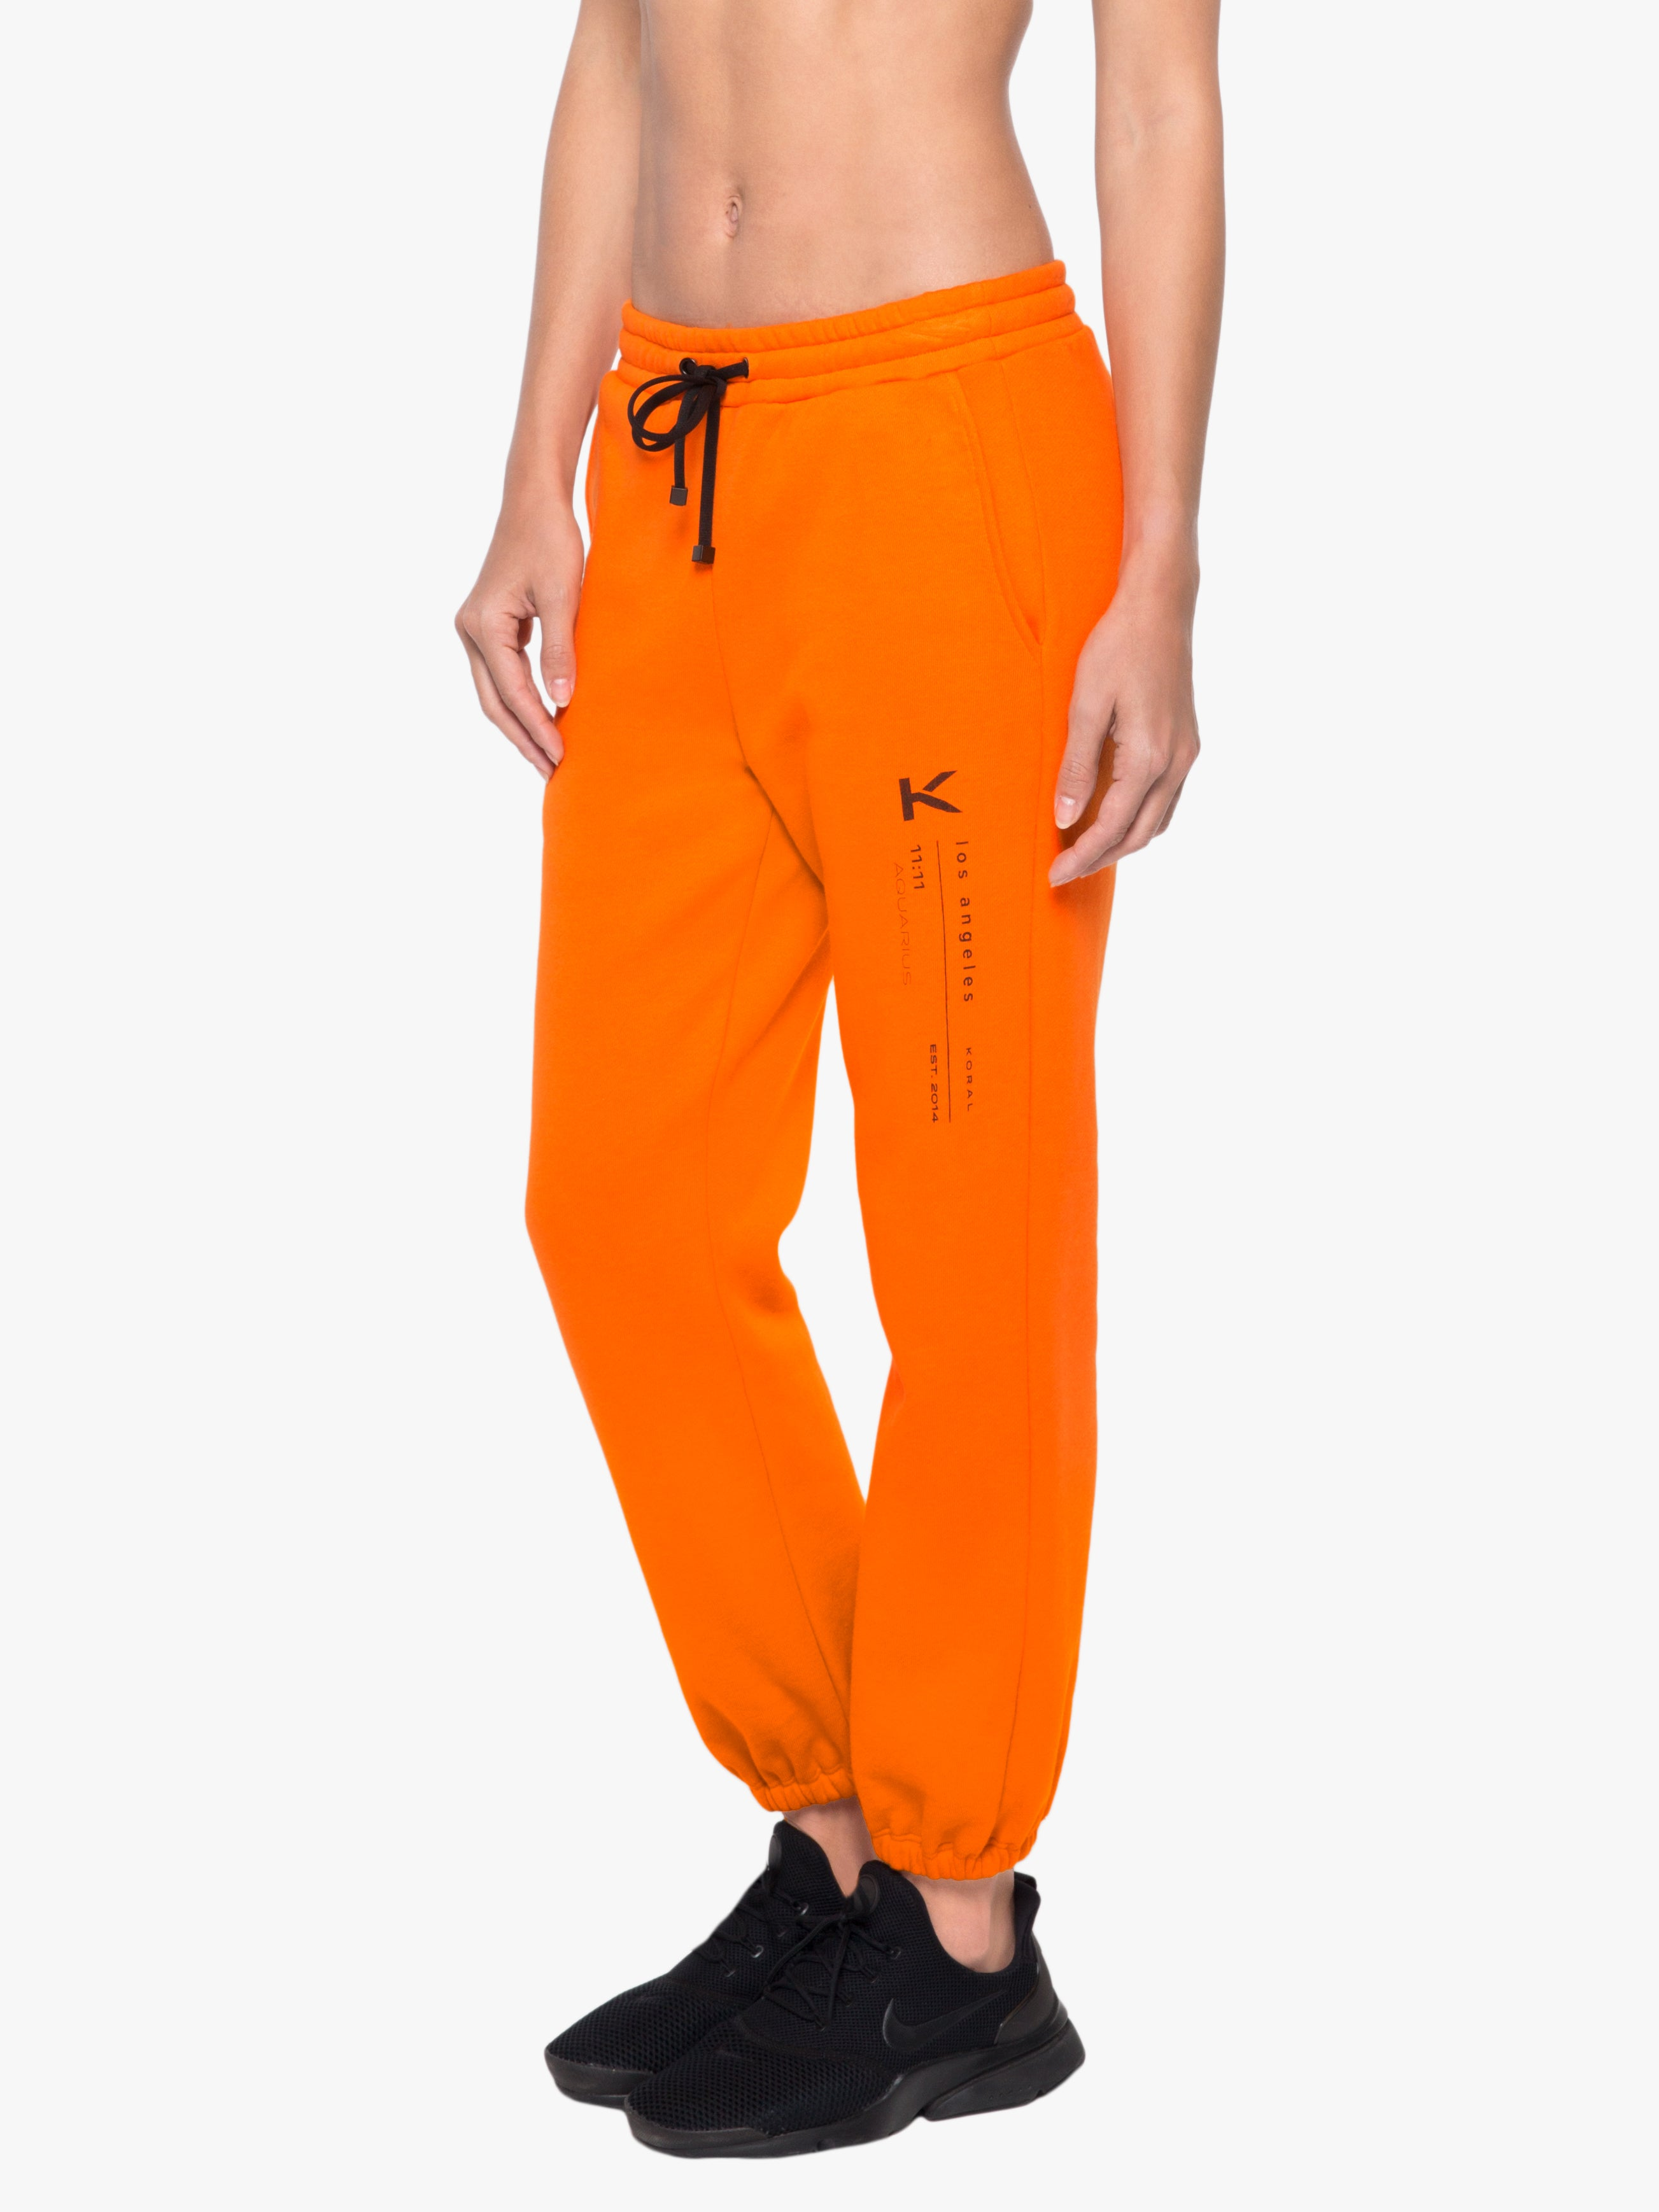 Oblivion Matte Sweatpant - Jaspar Orange